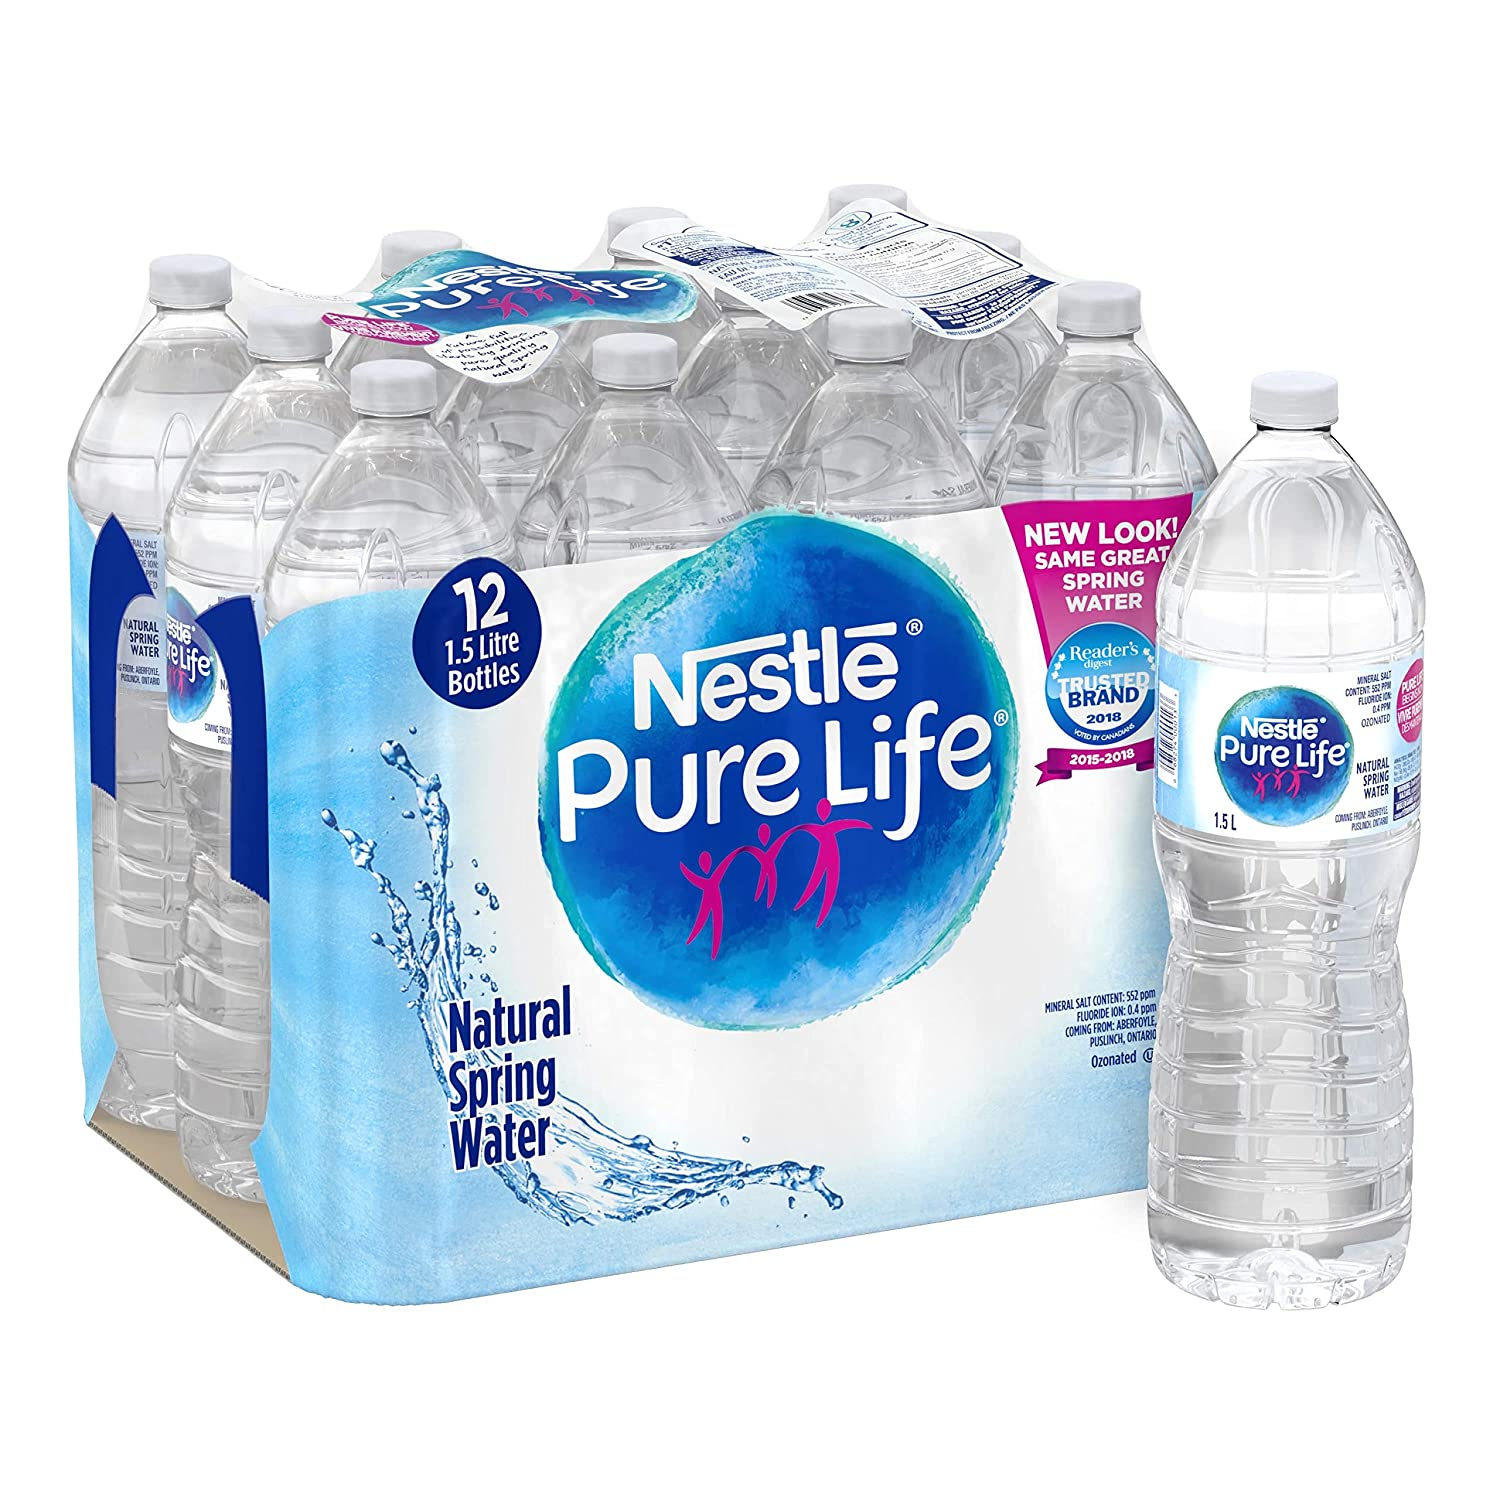 ac4410fce6 Nestle Pure Life 100% Natural Spring Water 1.5L Plastic Bottle, 12 Count:  Amazon.ca: Grocery